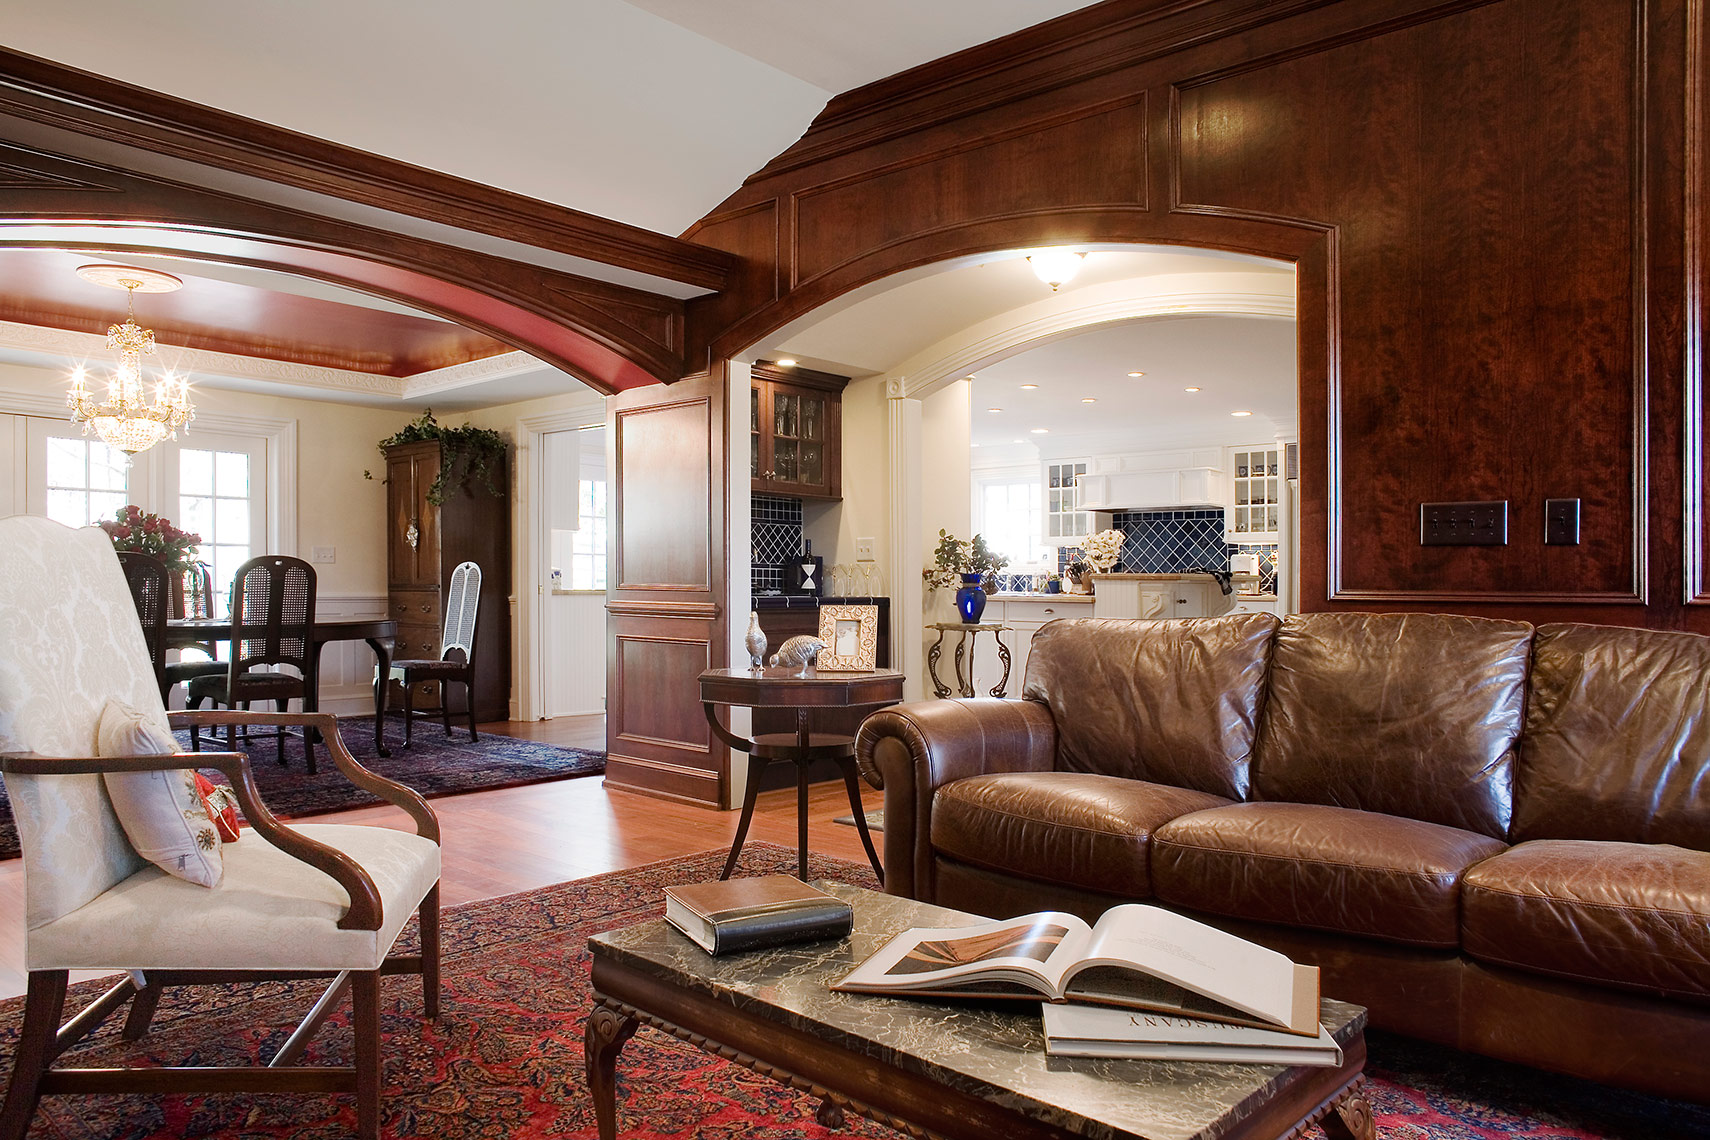 custom cabinets nj-Family Room Traditional Woodwork Figured Cherry and Trim work Crown Moulding